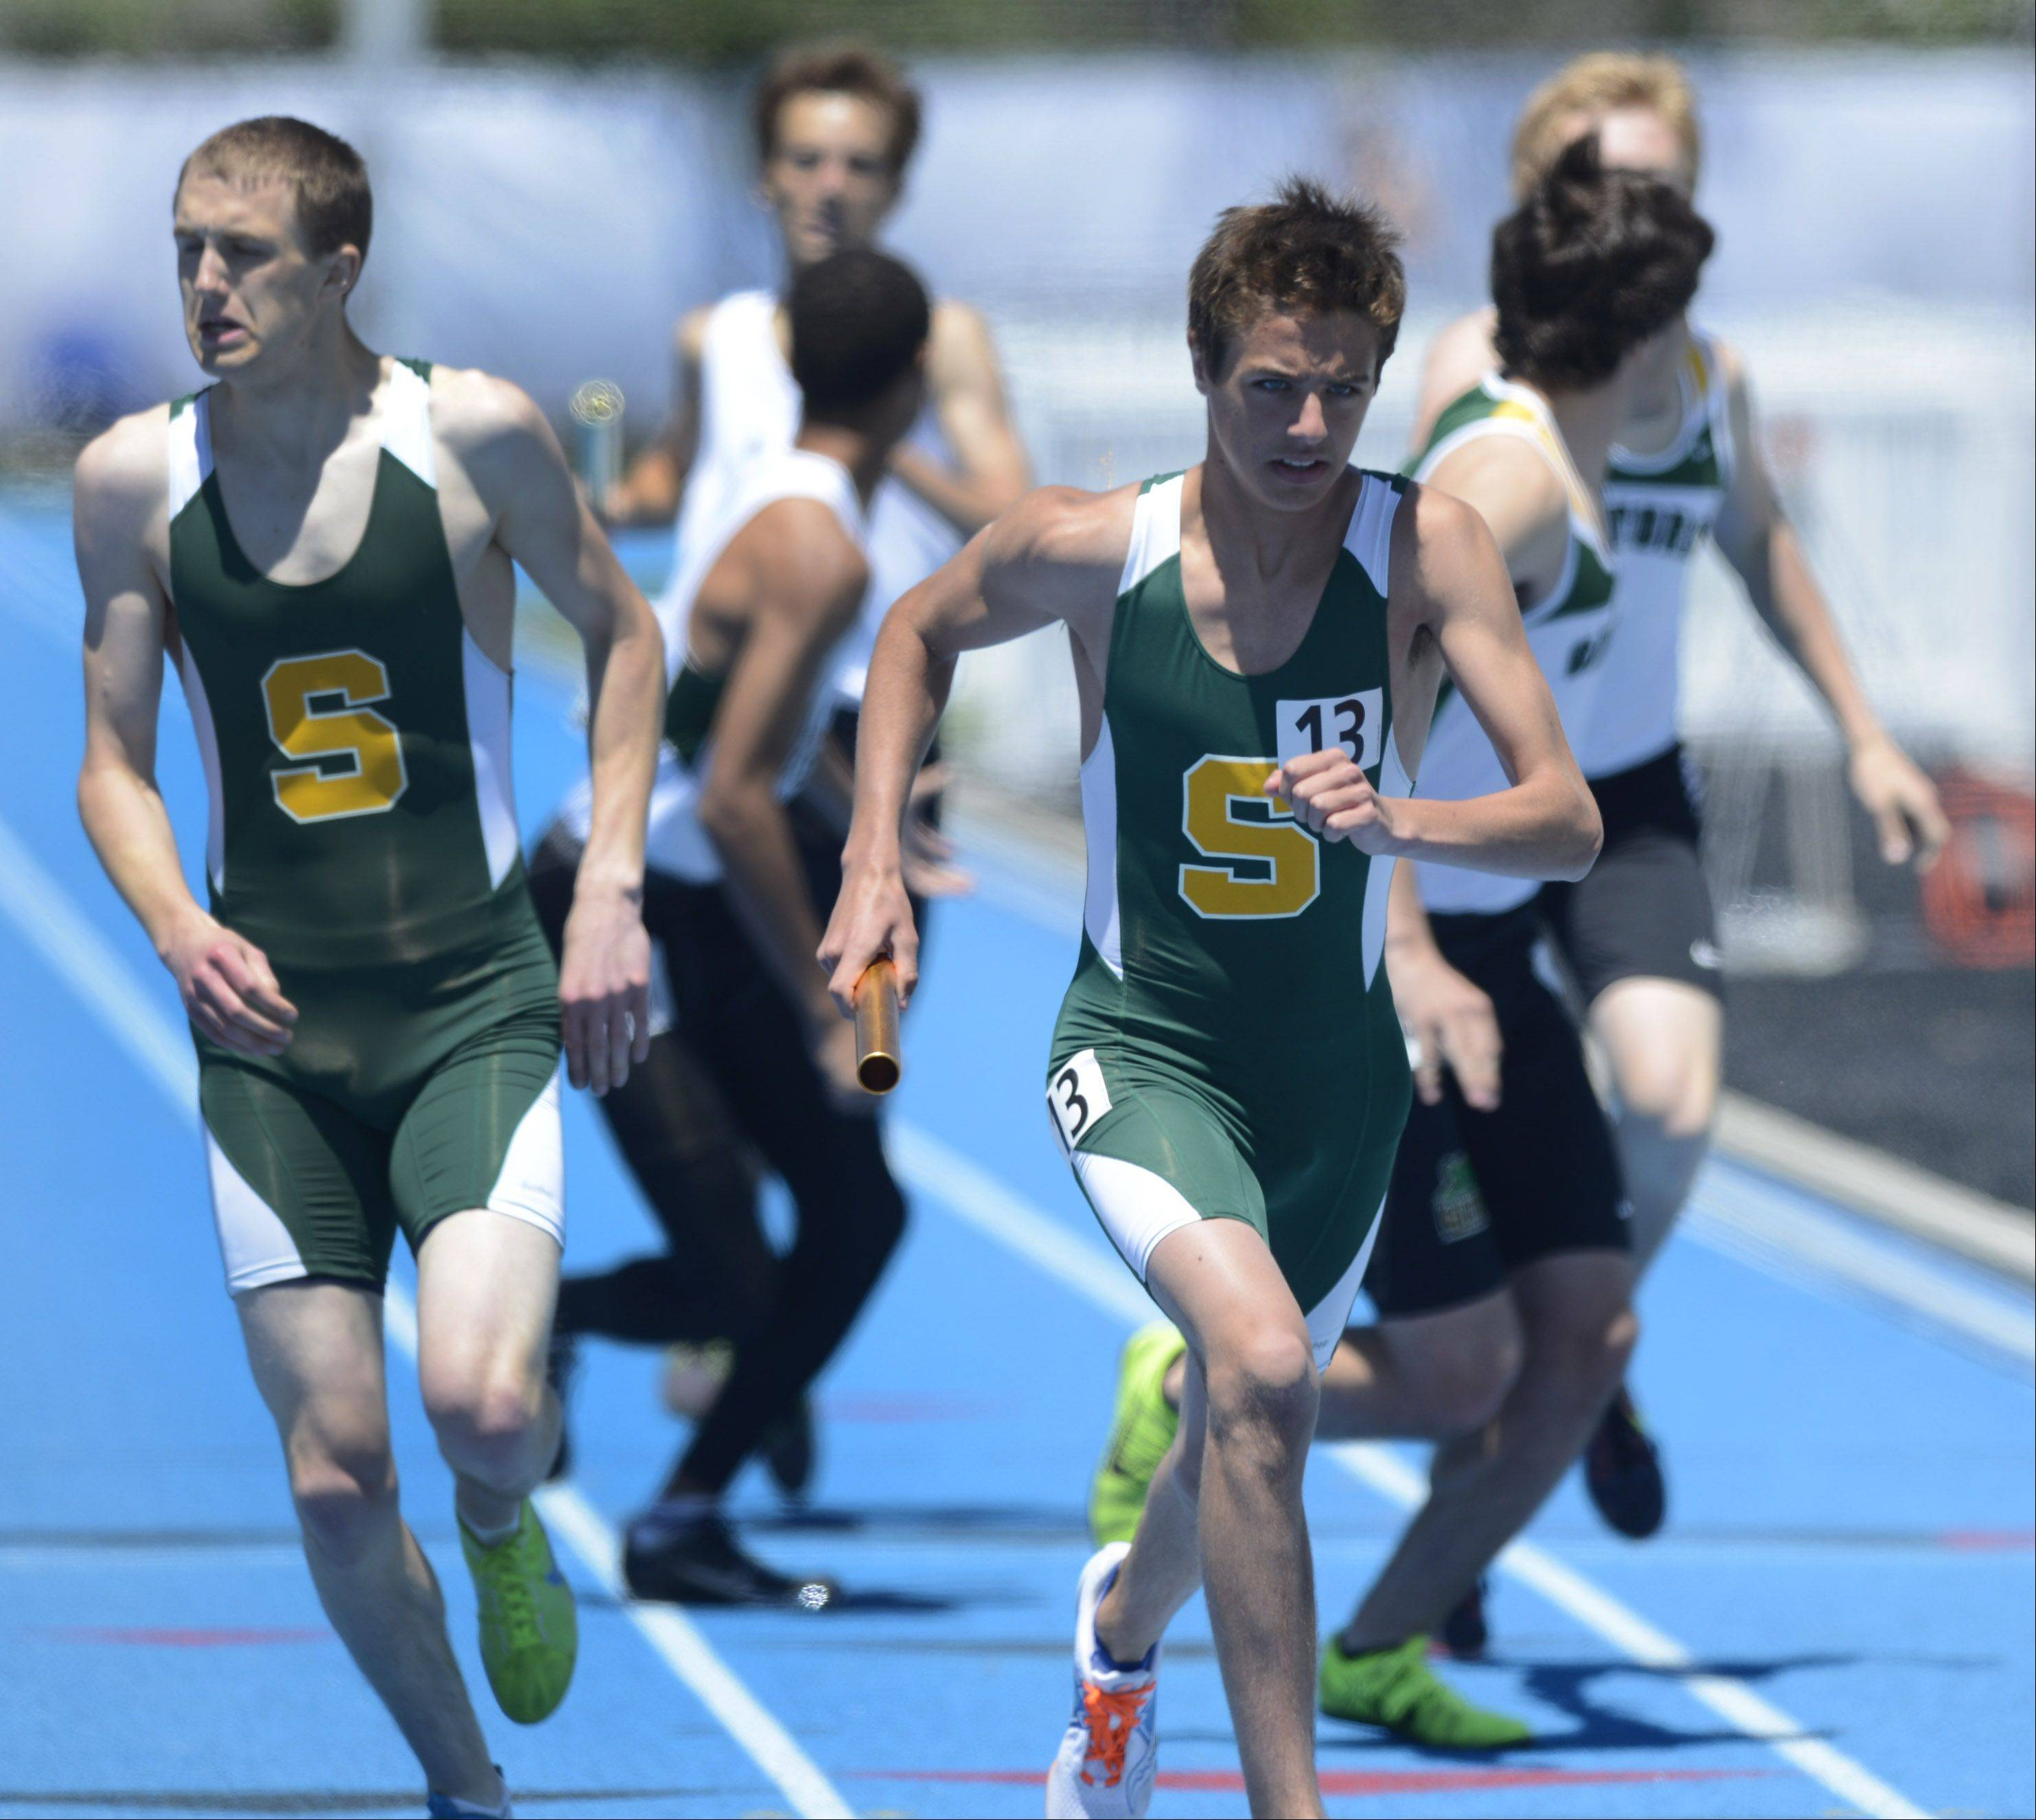 Stevenson's Jared Borowsky carries the baton for his team in the Class 3A 4x800-meter relay during the boys track state meet preliminaries in Charleston on Friday.